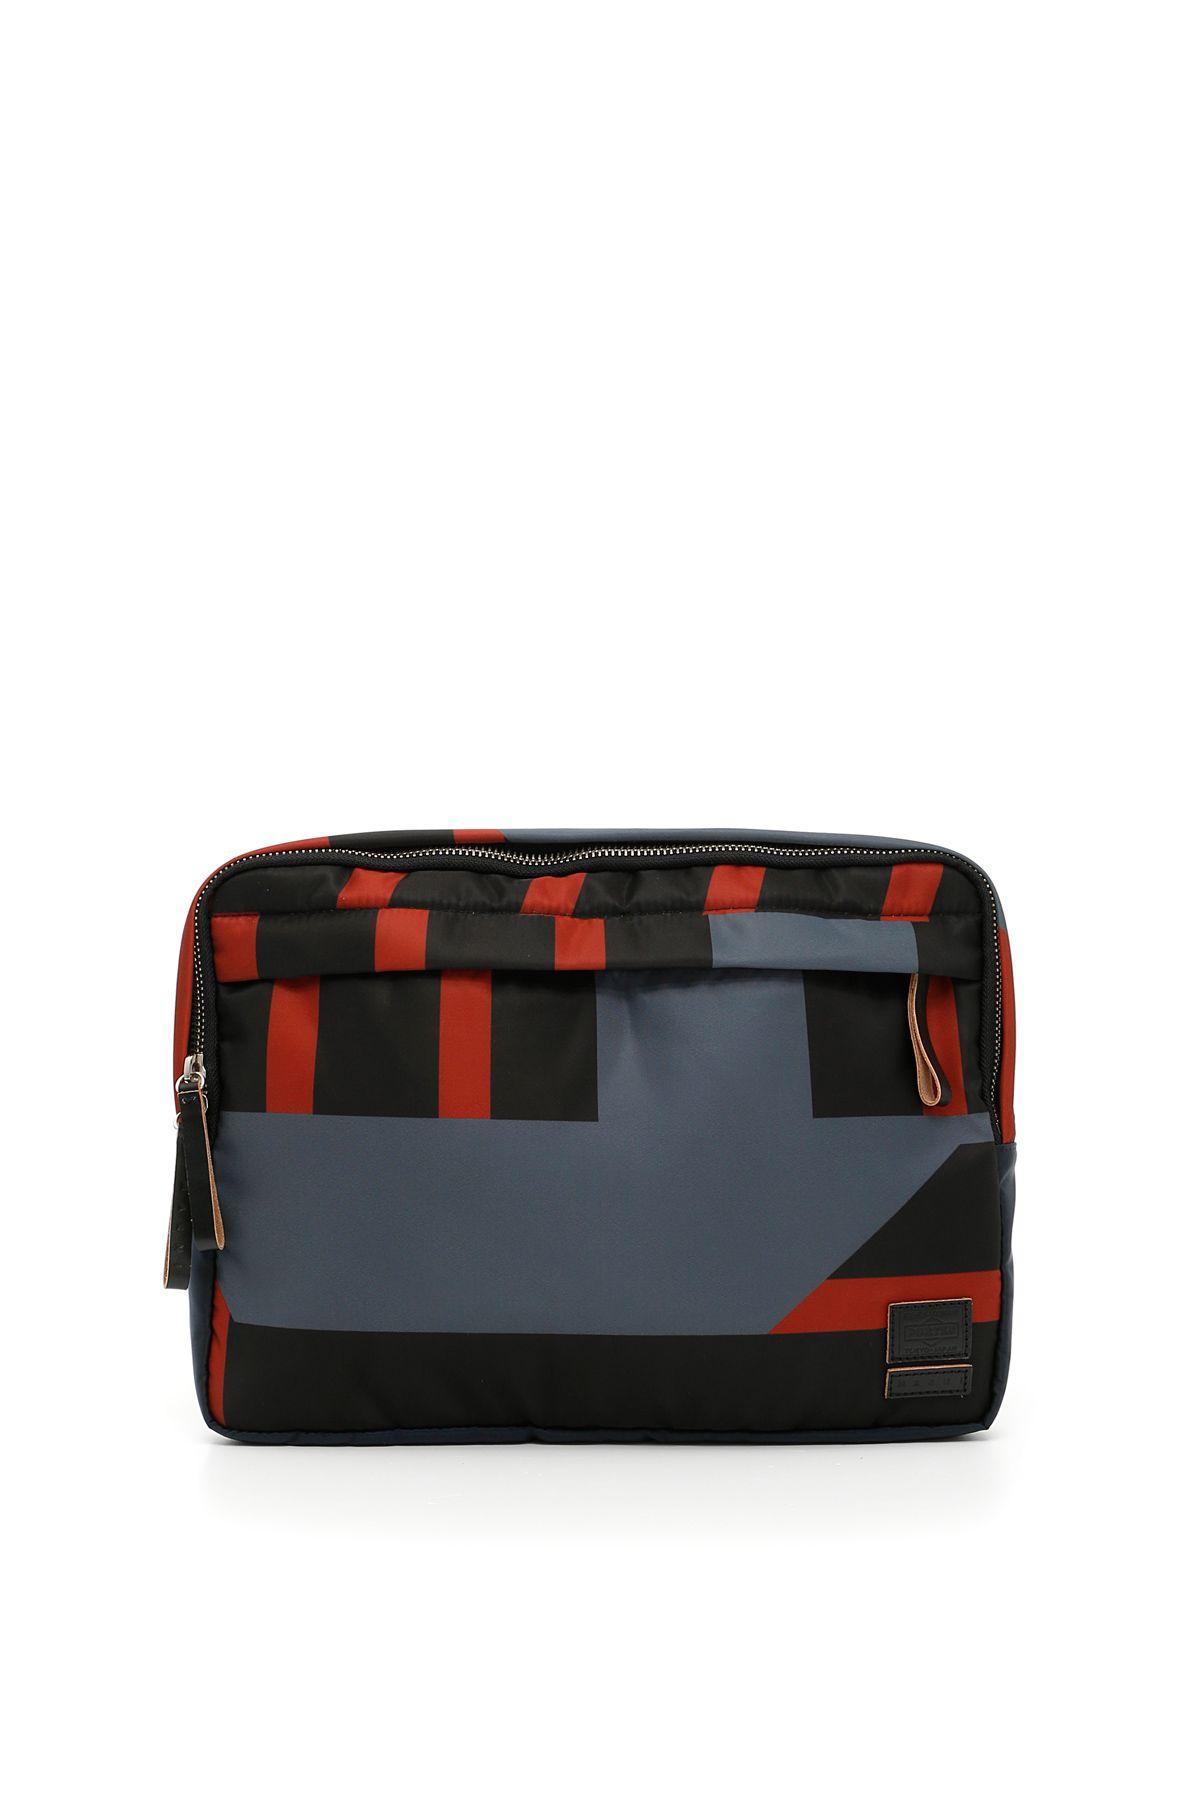 Marni Document Case In Basic